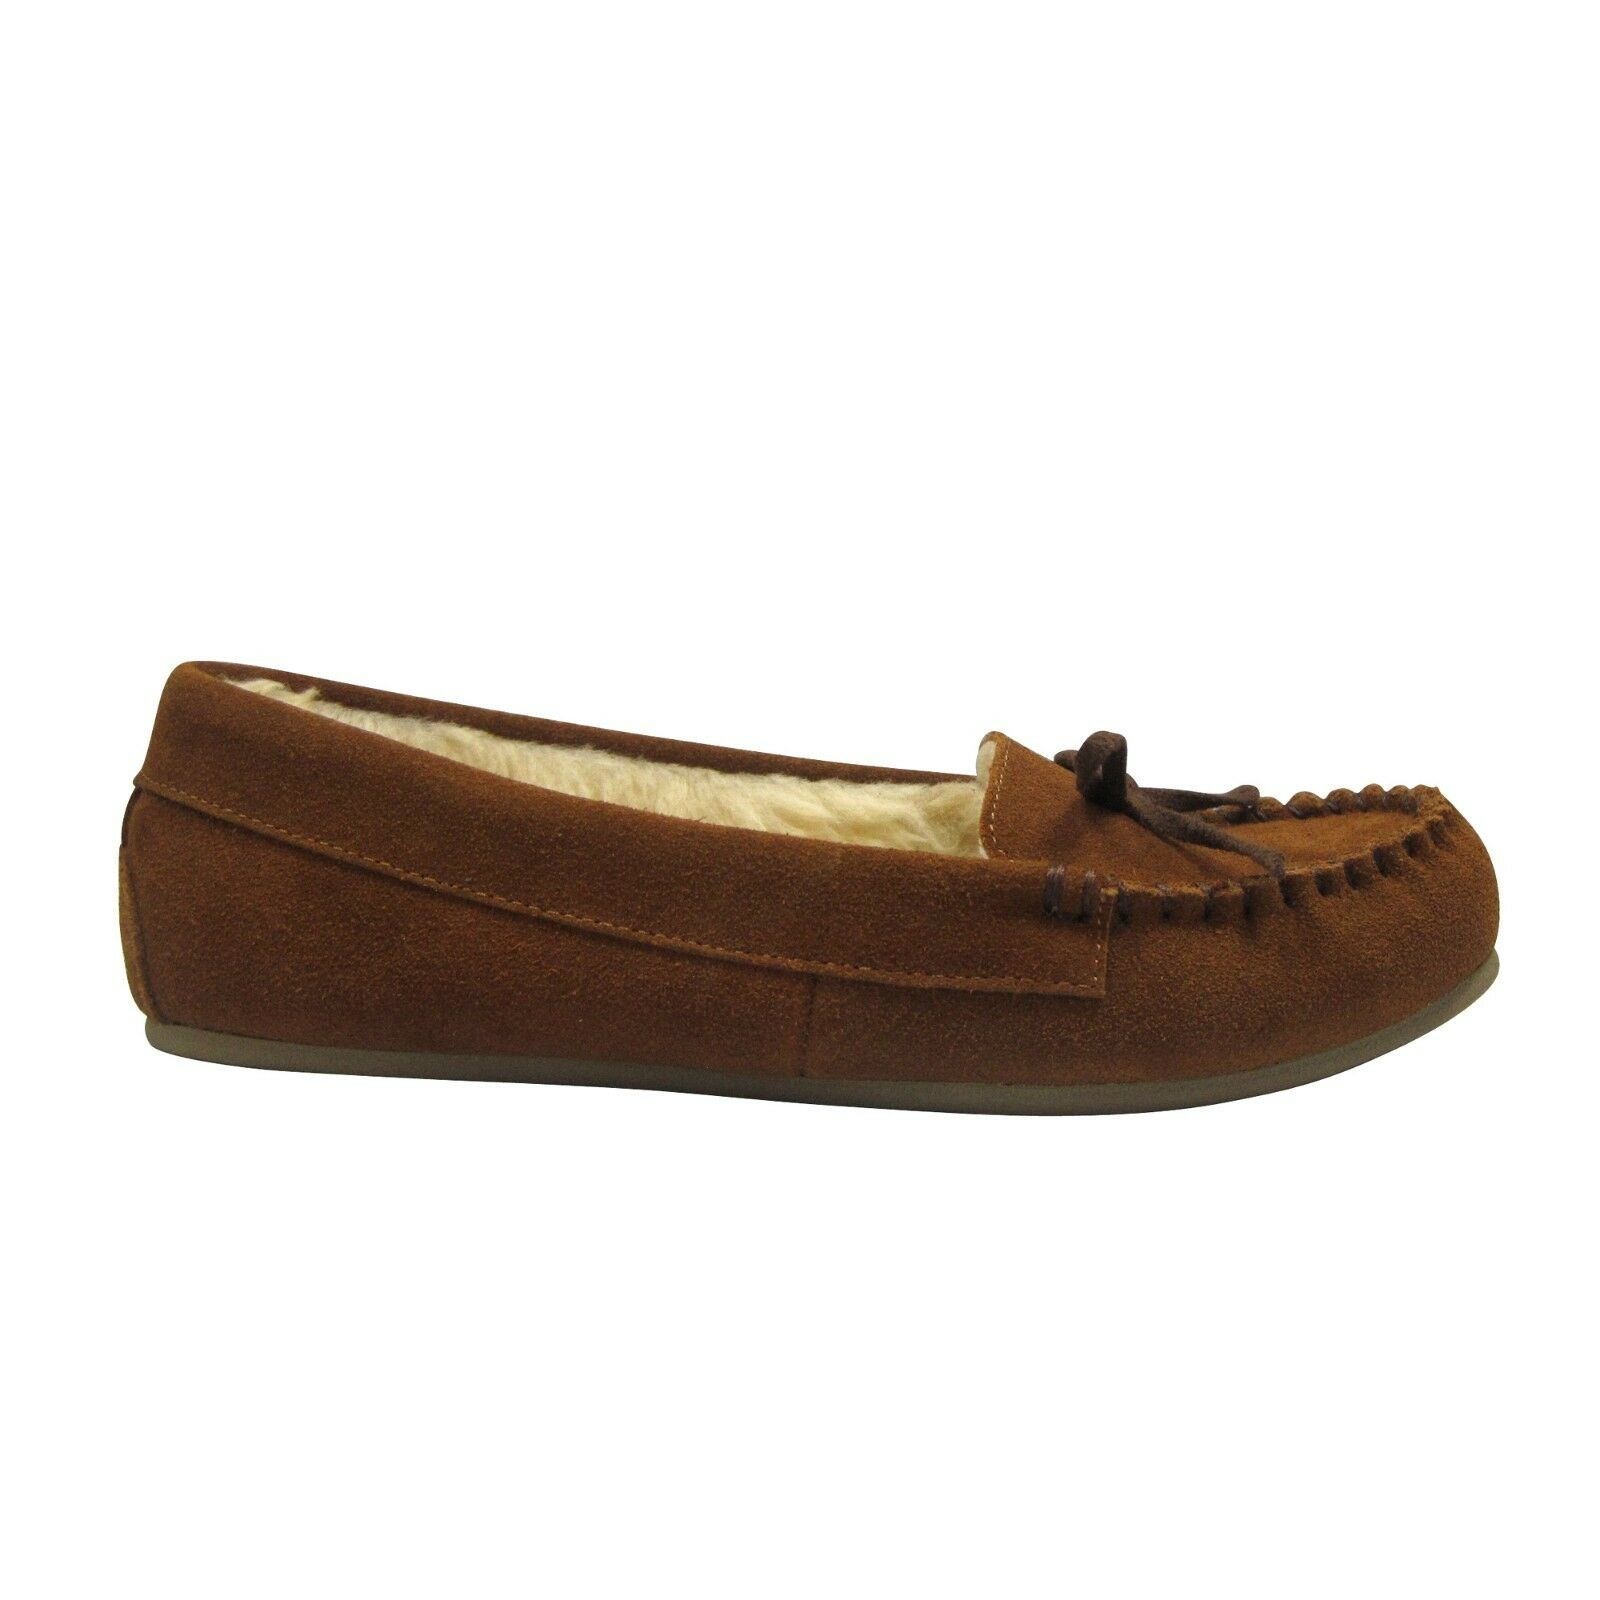 Moccasin Slippers Shoes Women's Chestnut Color Size X-Large 11-12 Leather NEW